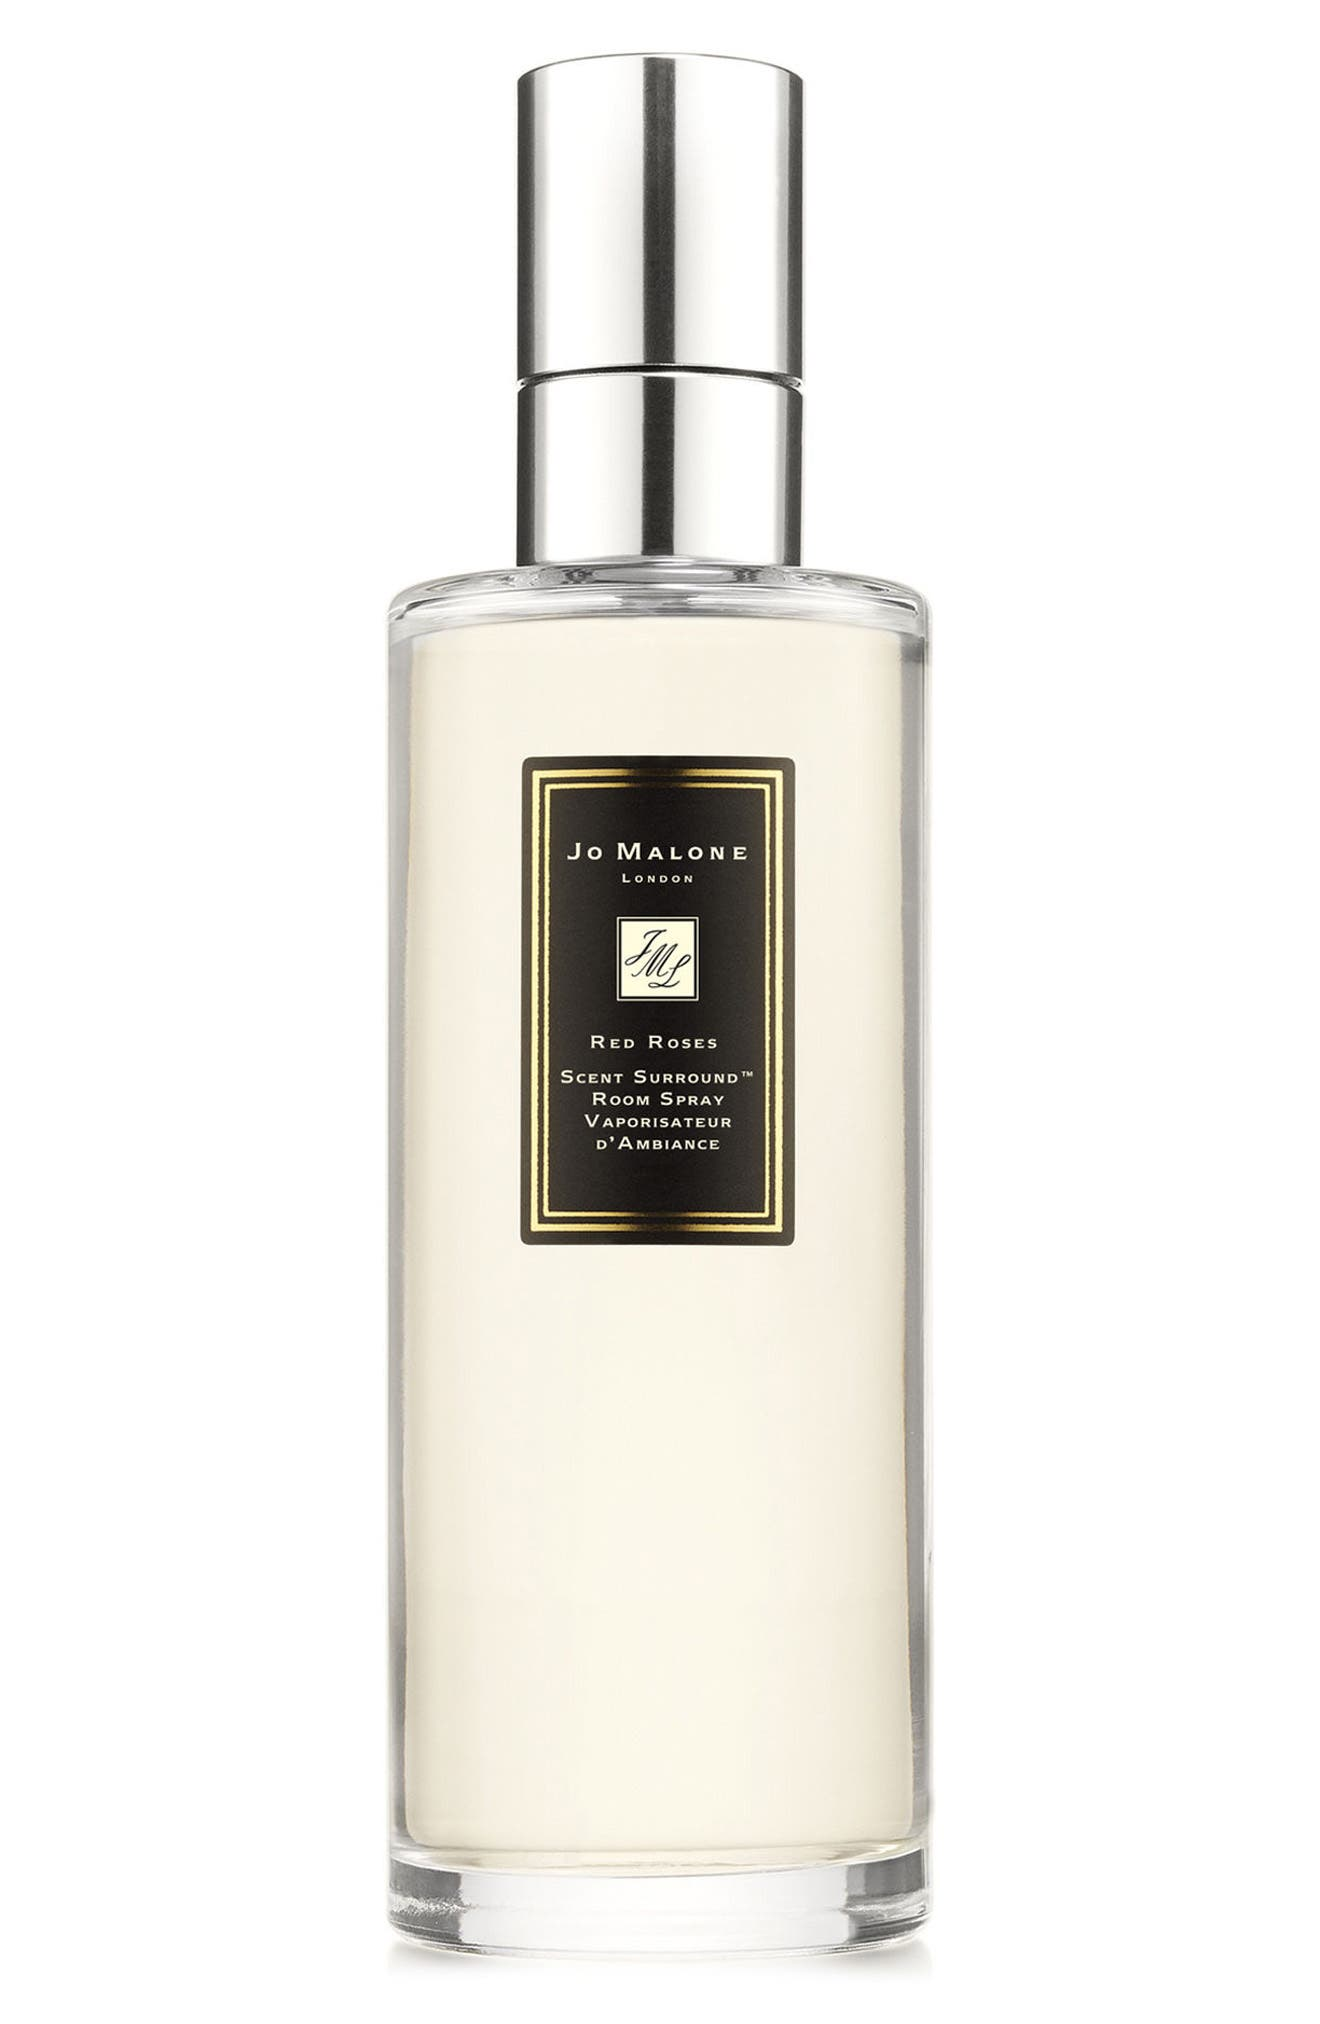 Jo Malone™ 'Red Roses' Scent Surround™ Room Spray